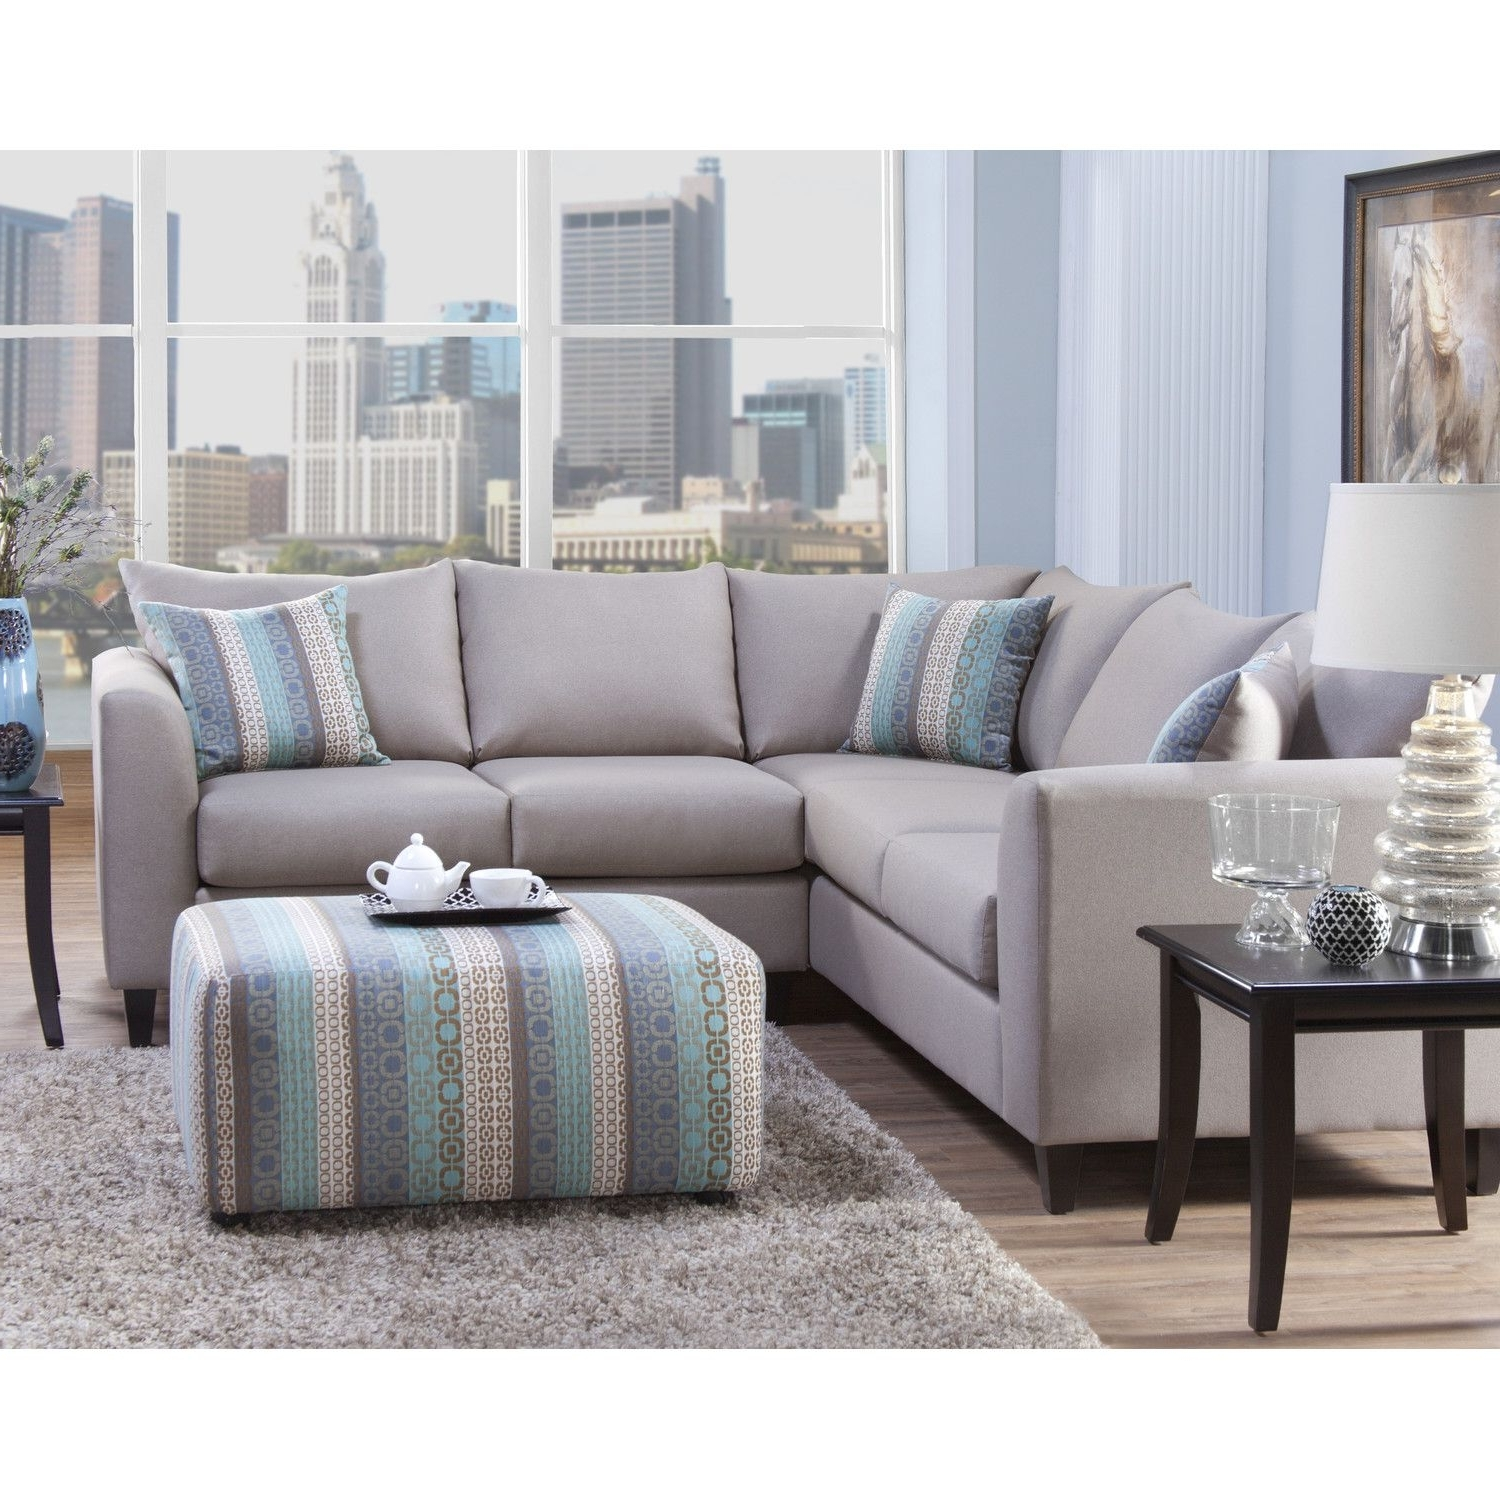 Free Shipping! Shop Wayfair For Serta Upholstery Sectional – Great With Favorite Ontario Canada Sectional Sofas (View 4 of 20)